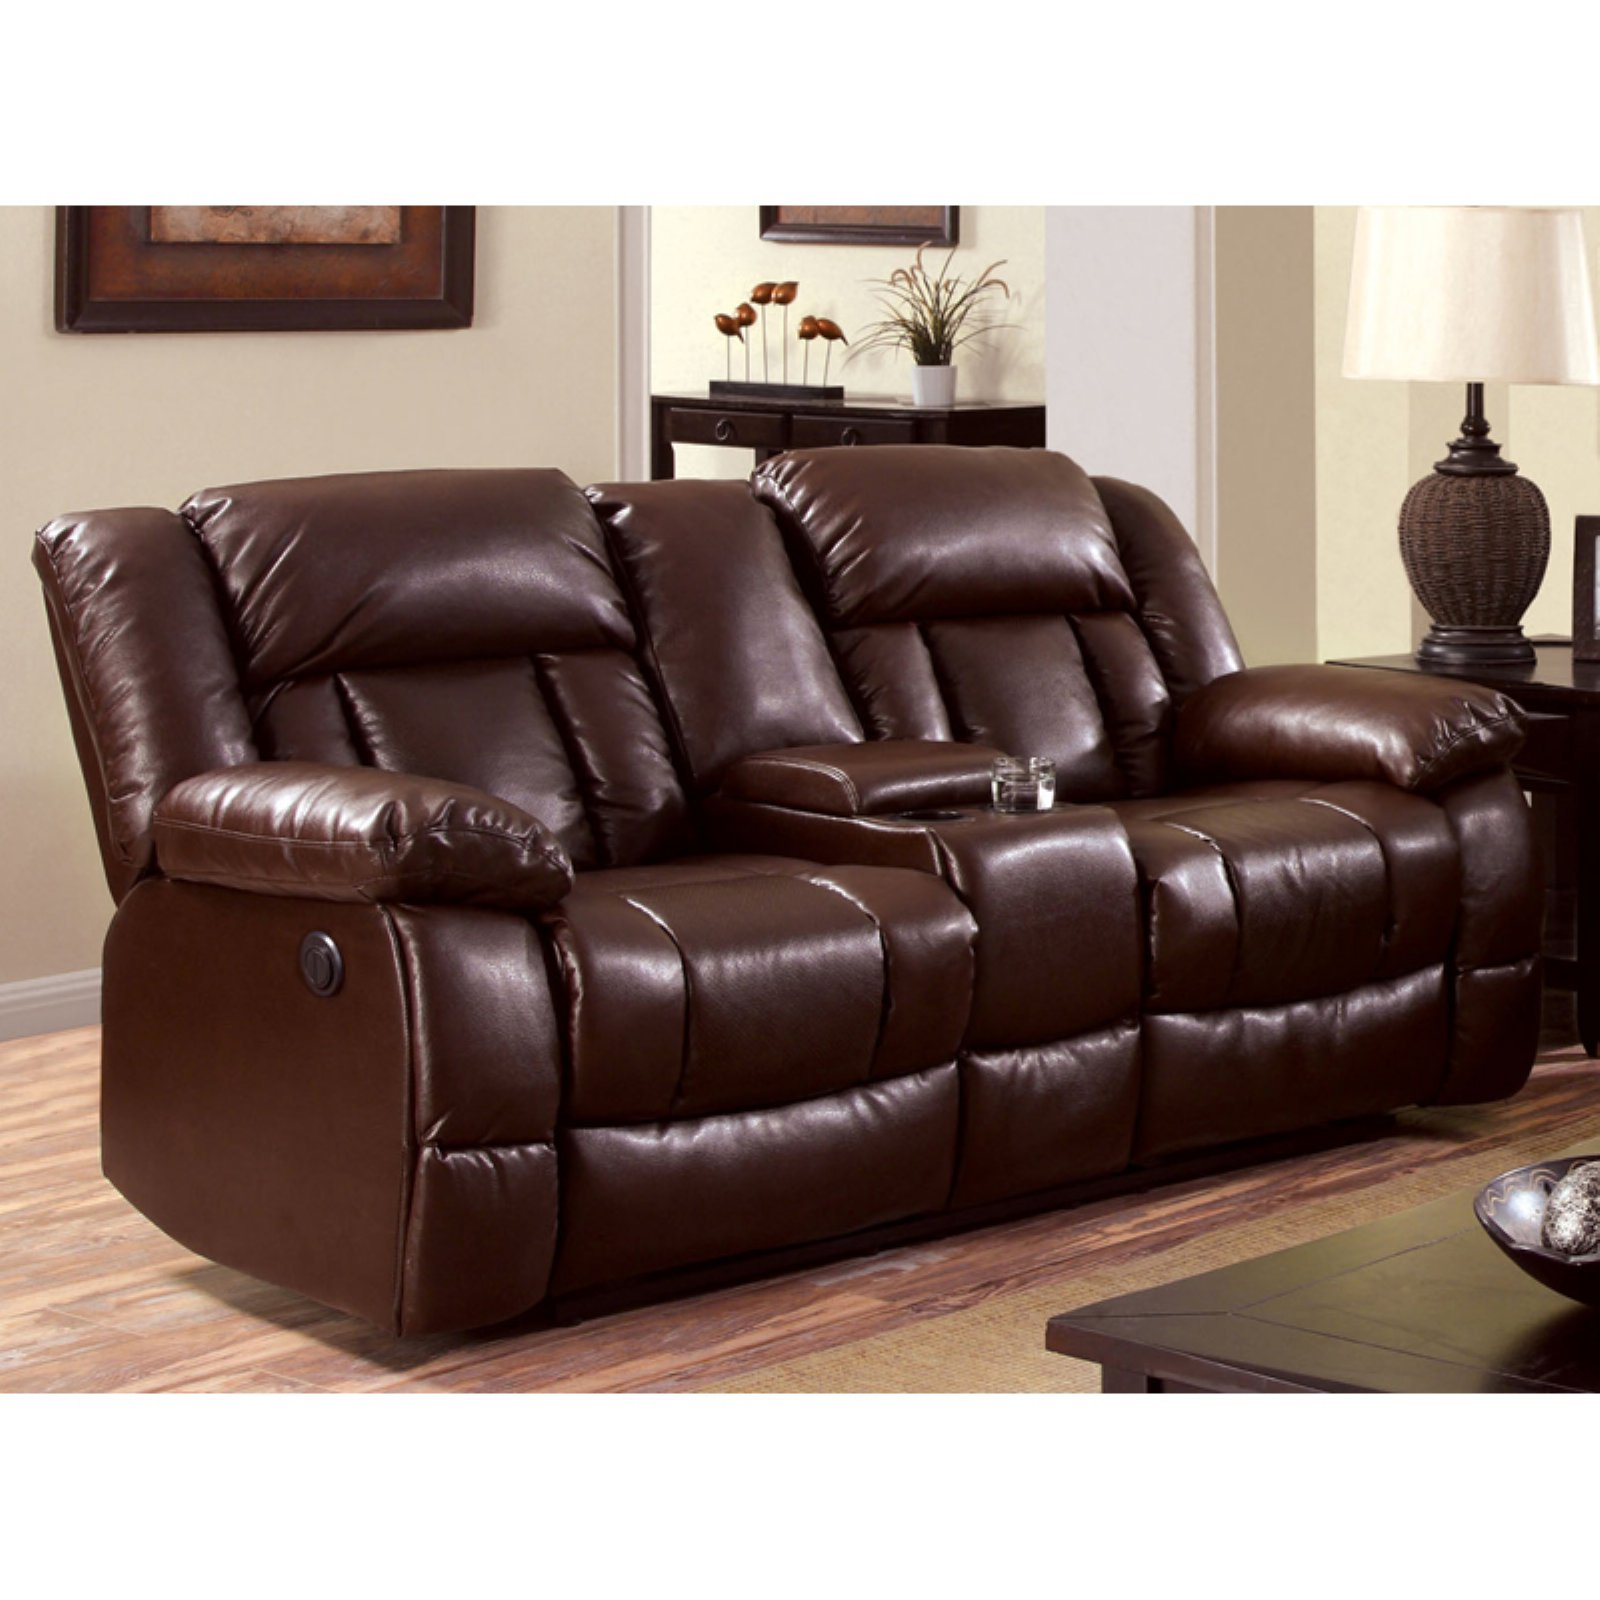 Furniture of America Bostwick Recliner Loveseat with Center Cup Holders